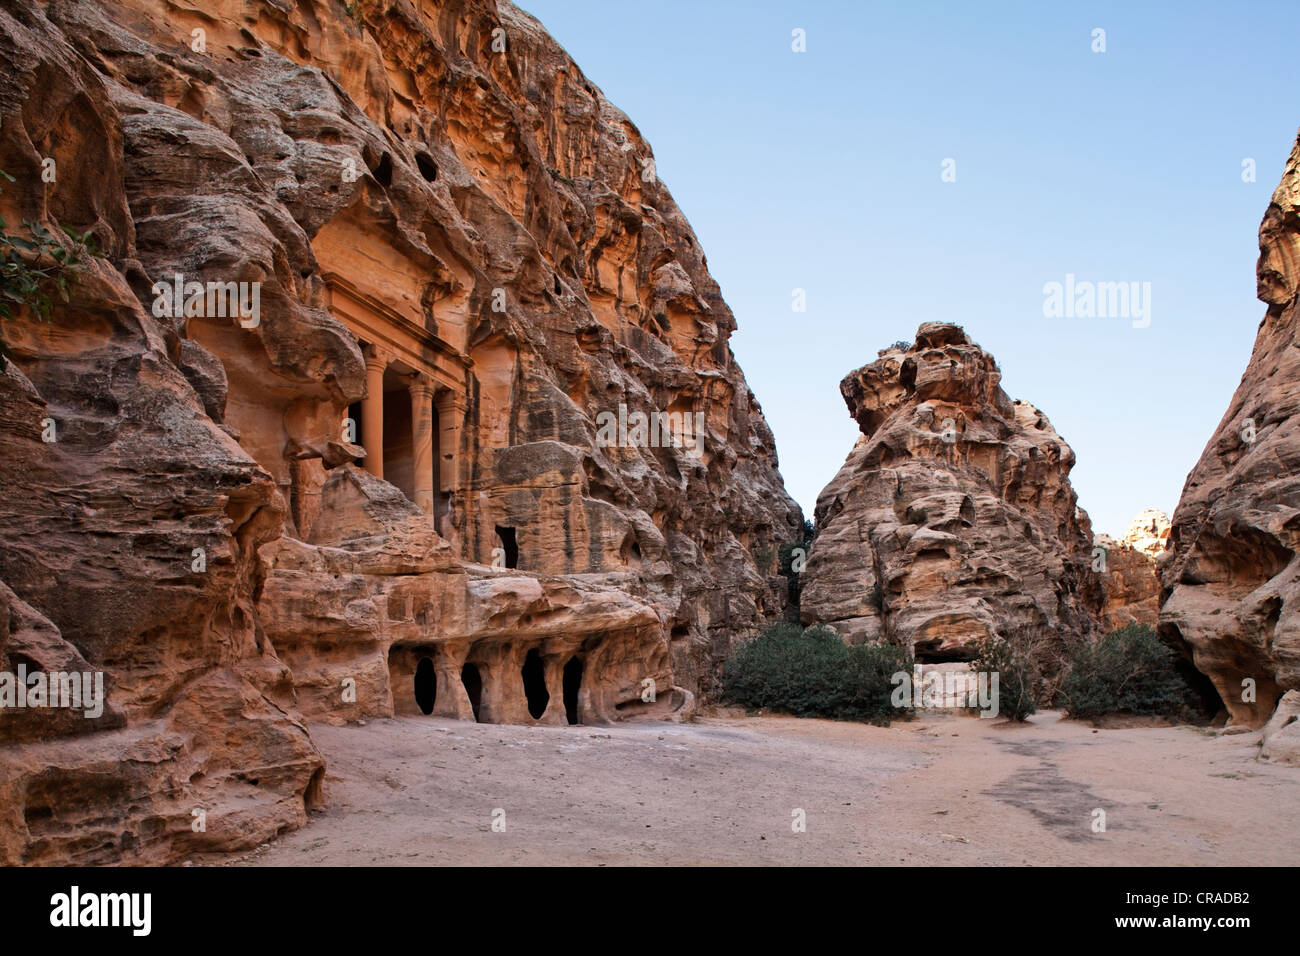 Engraved sandstone at the portal of a tomb, Little Petra, the capital city of the Nabataeans, rock city - Stock Image